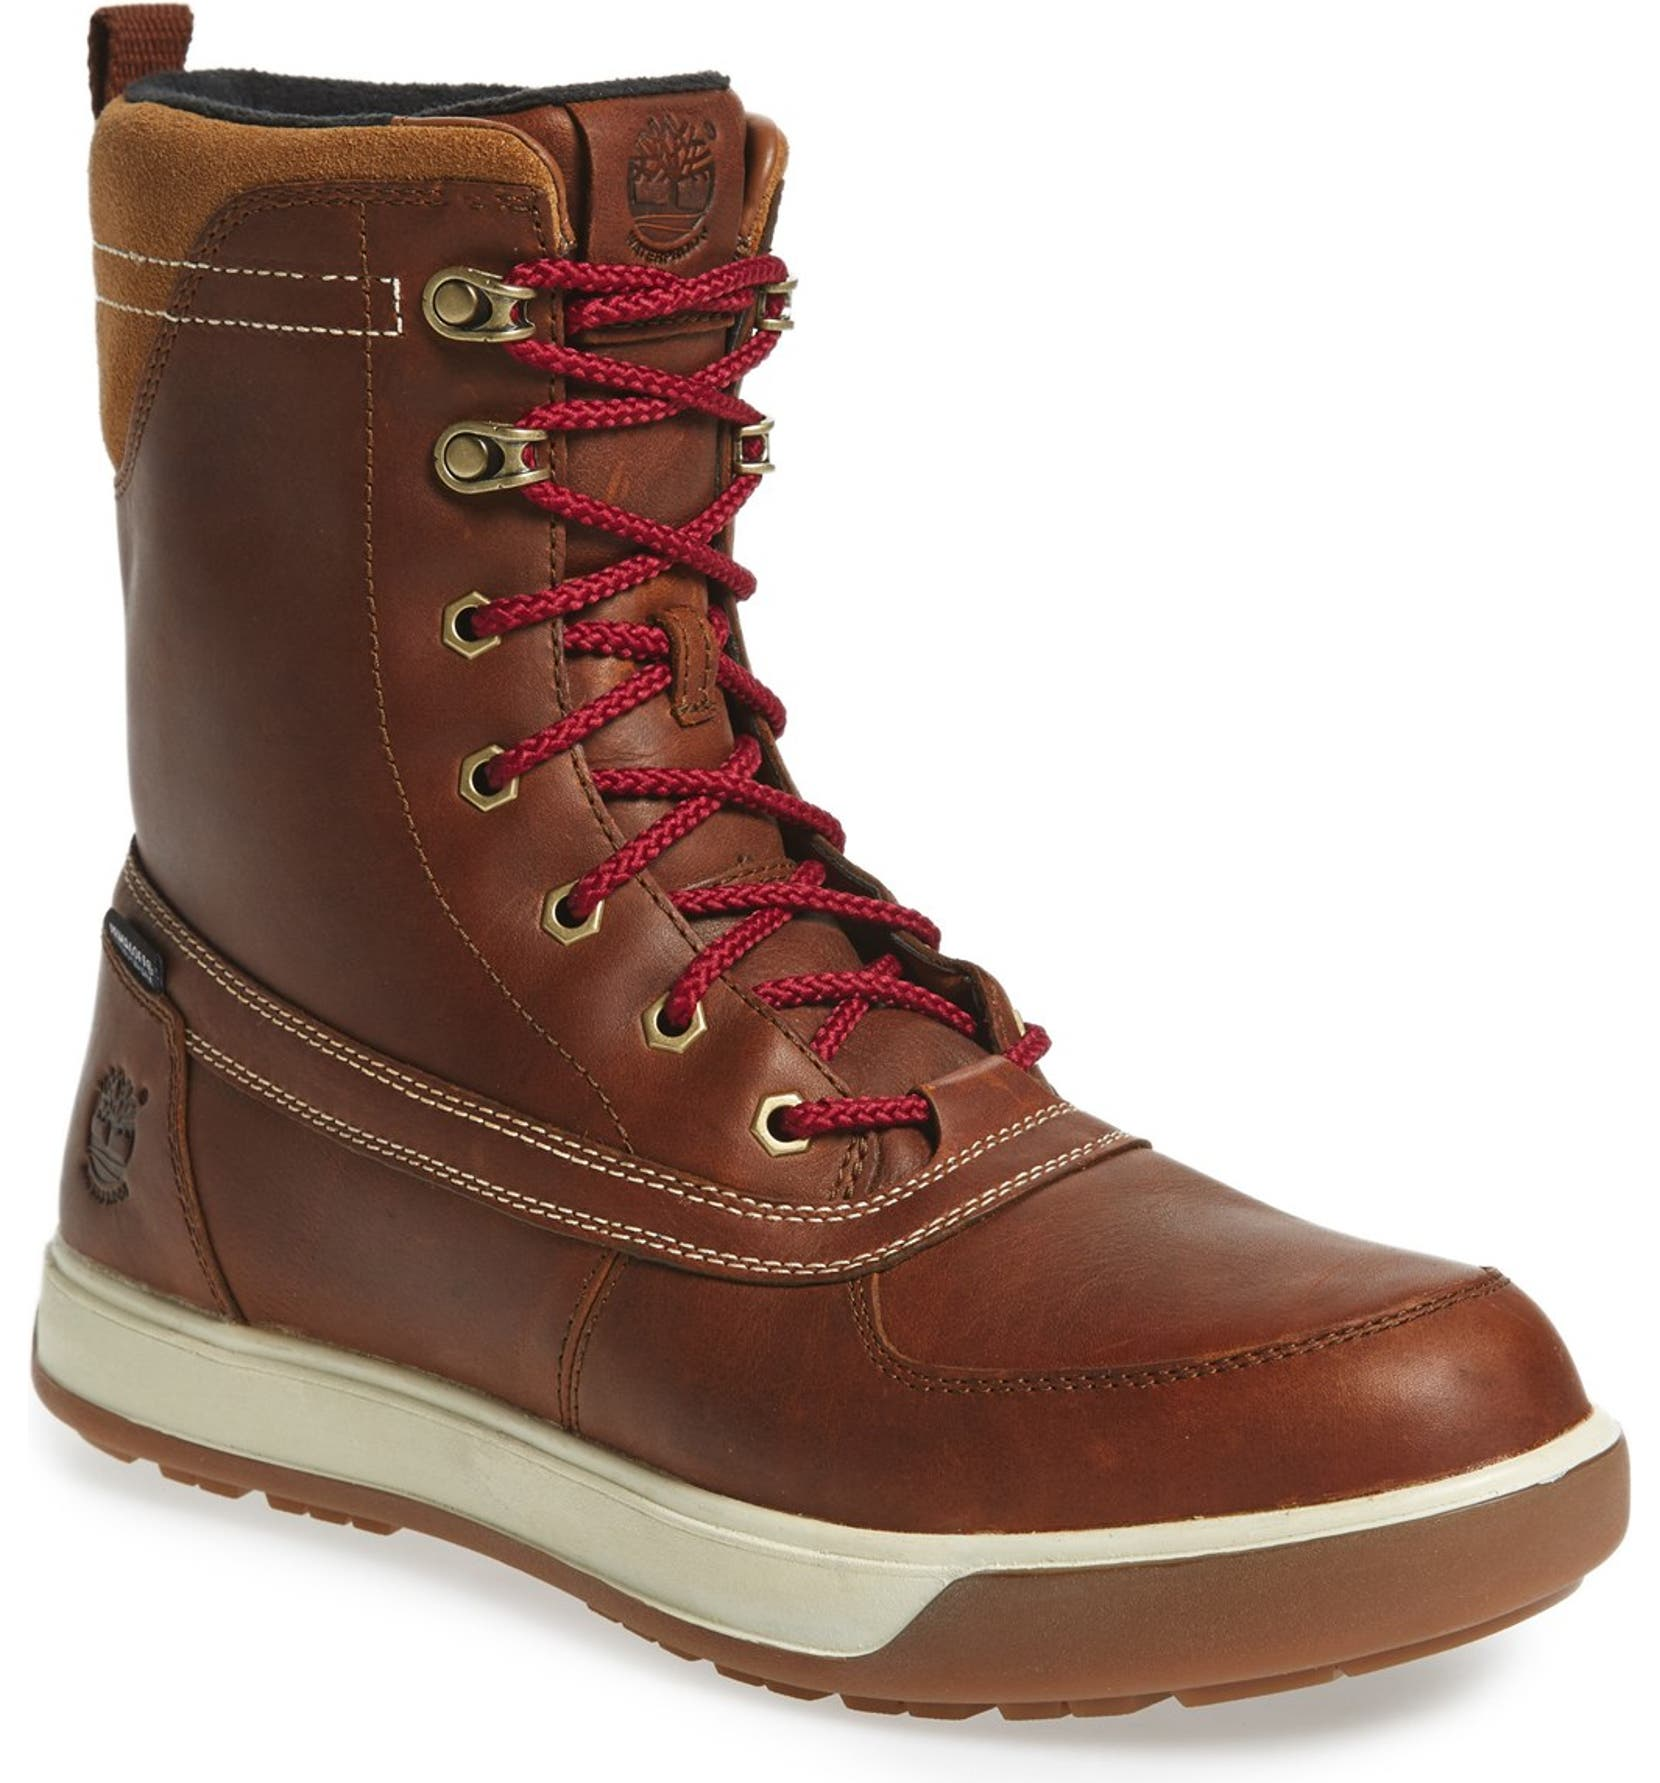 c4318d39bfe 'Tenmile' Snow Boot